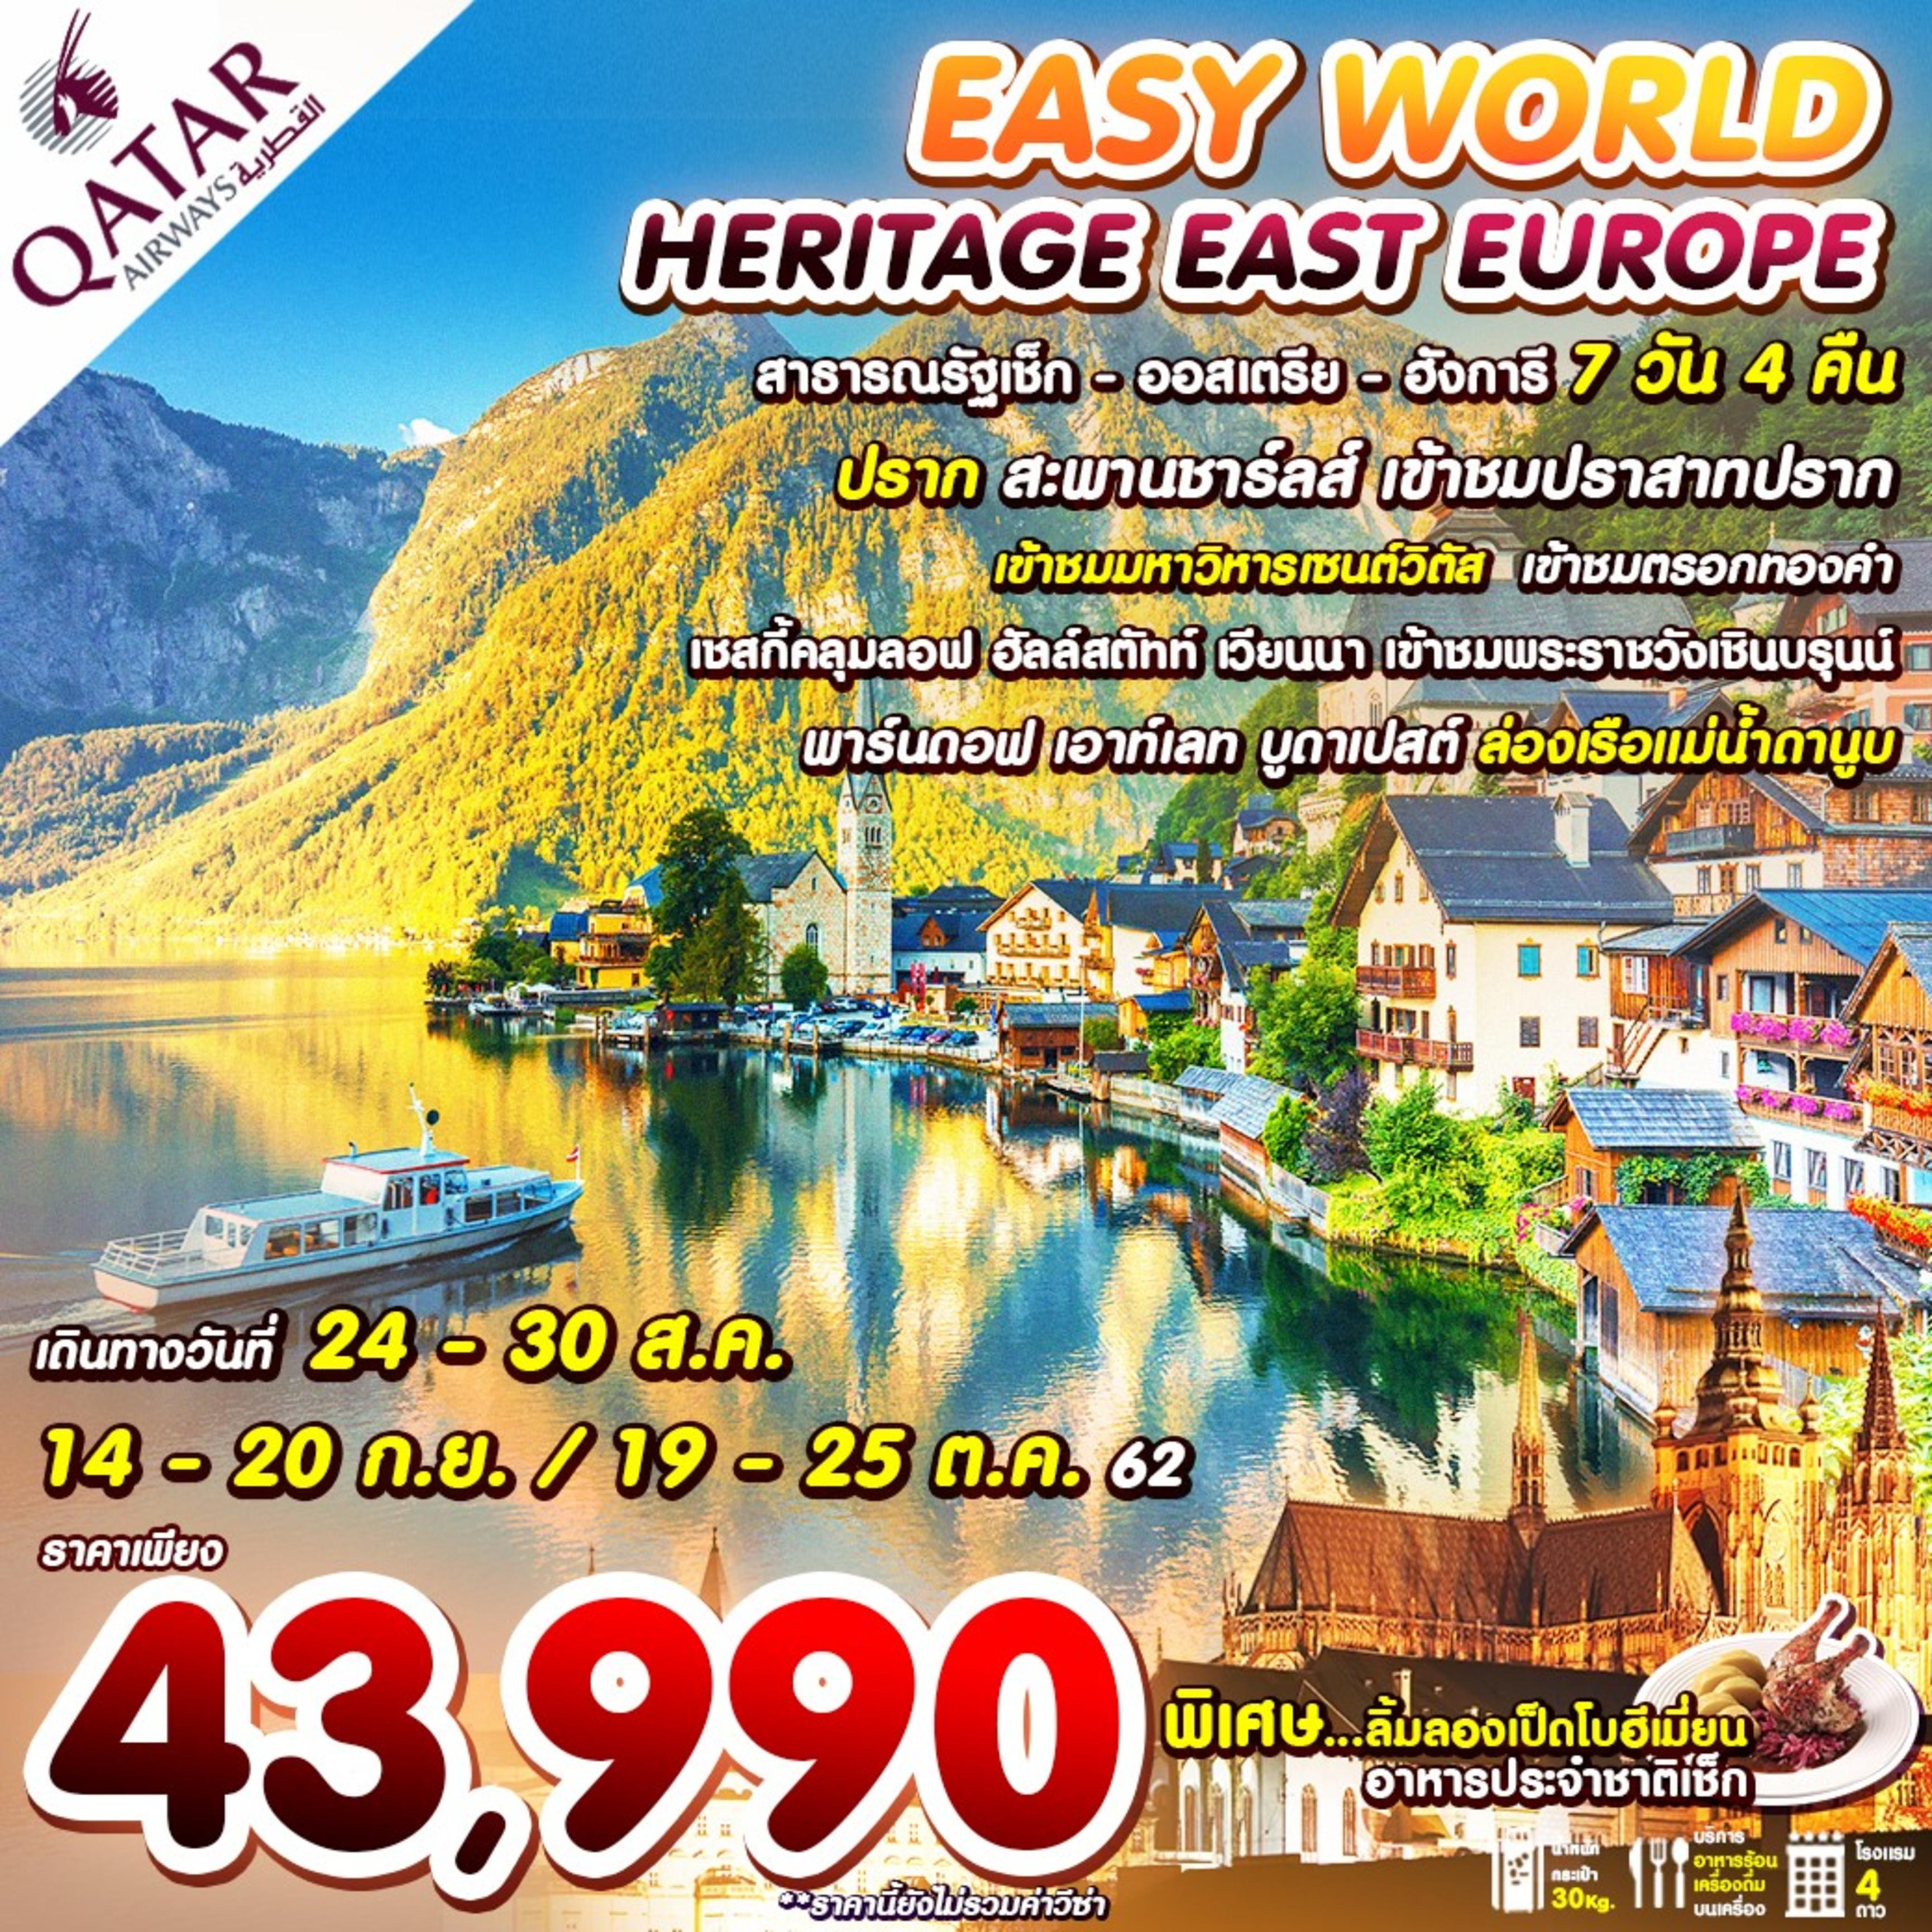 EASY WORLD HERITAGE EAST EUROPE 7D4N BY QR (CZ-AU-HU) AUG-OCT